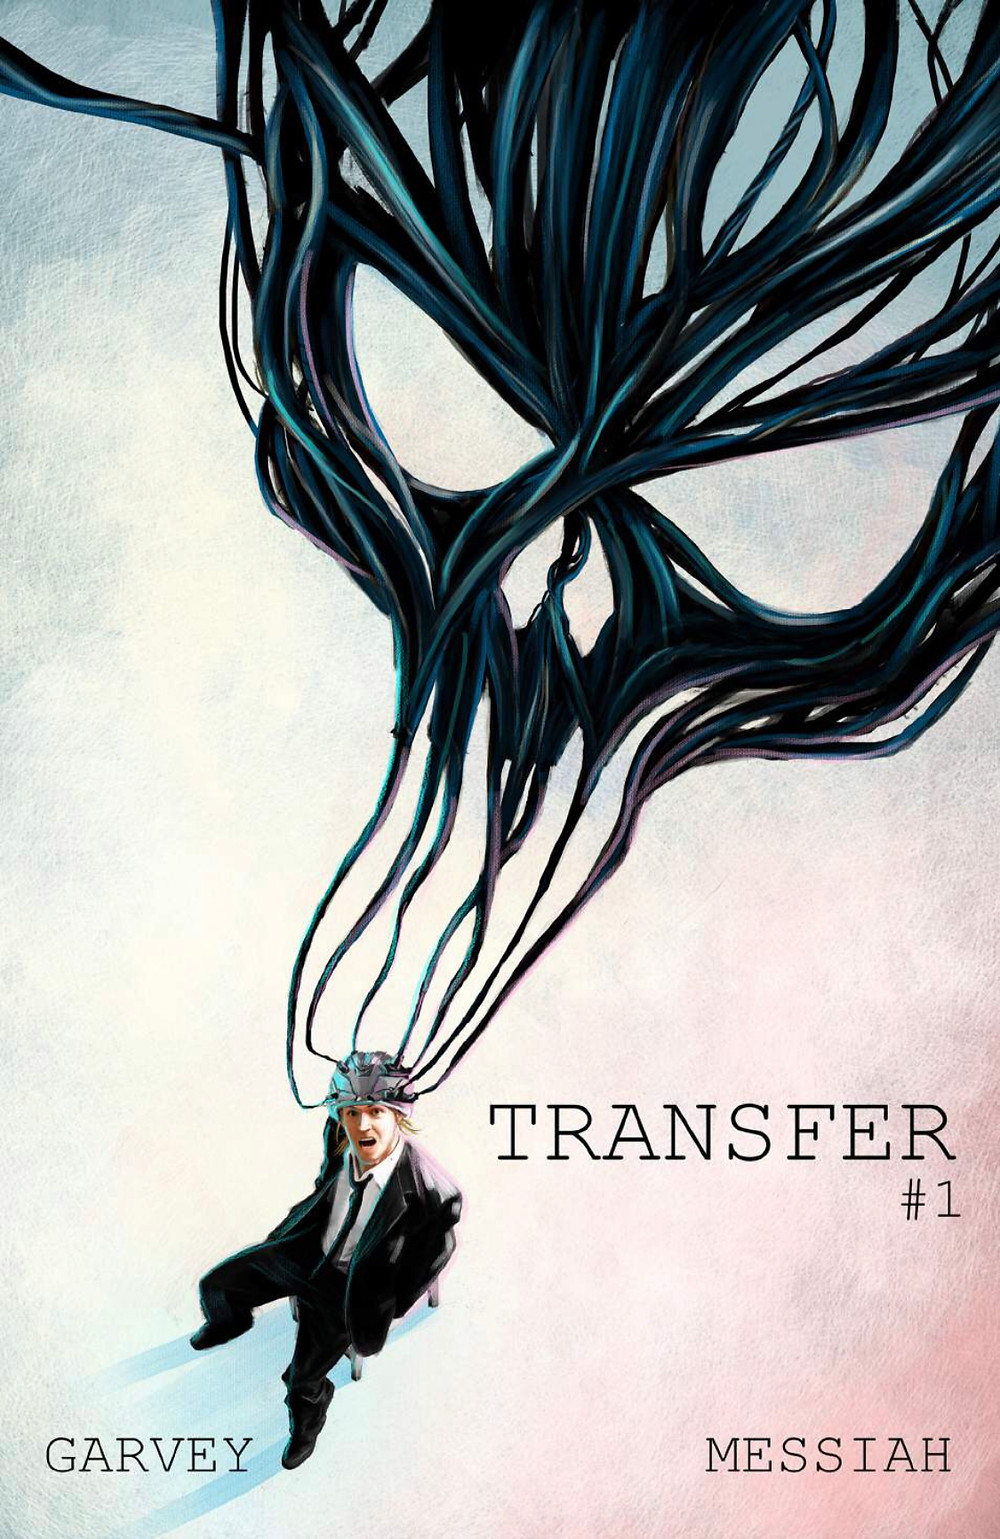 Transfer, issue #1, cover, self-published, Garvey/Messiah, cover by Dizevez